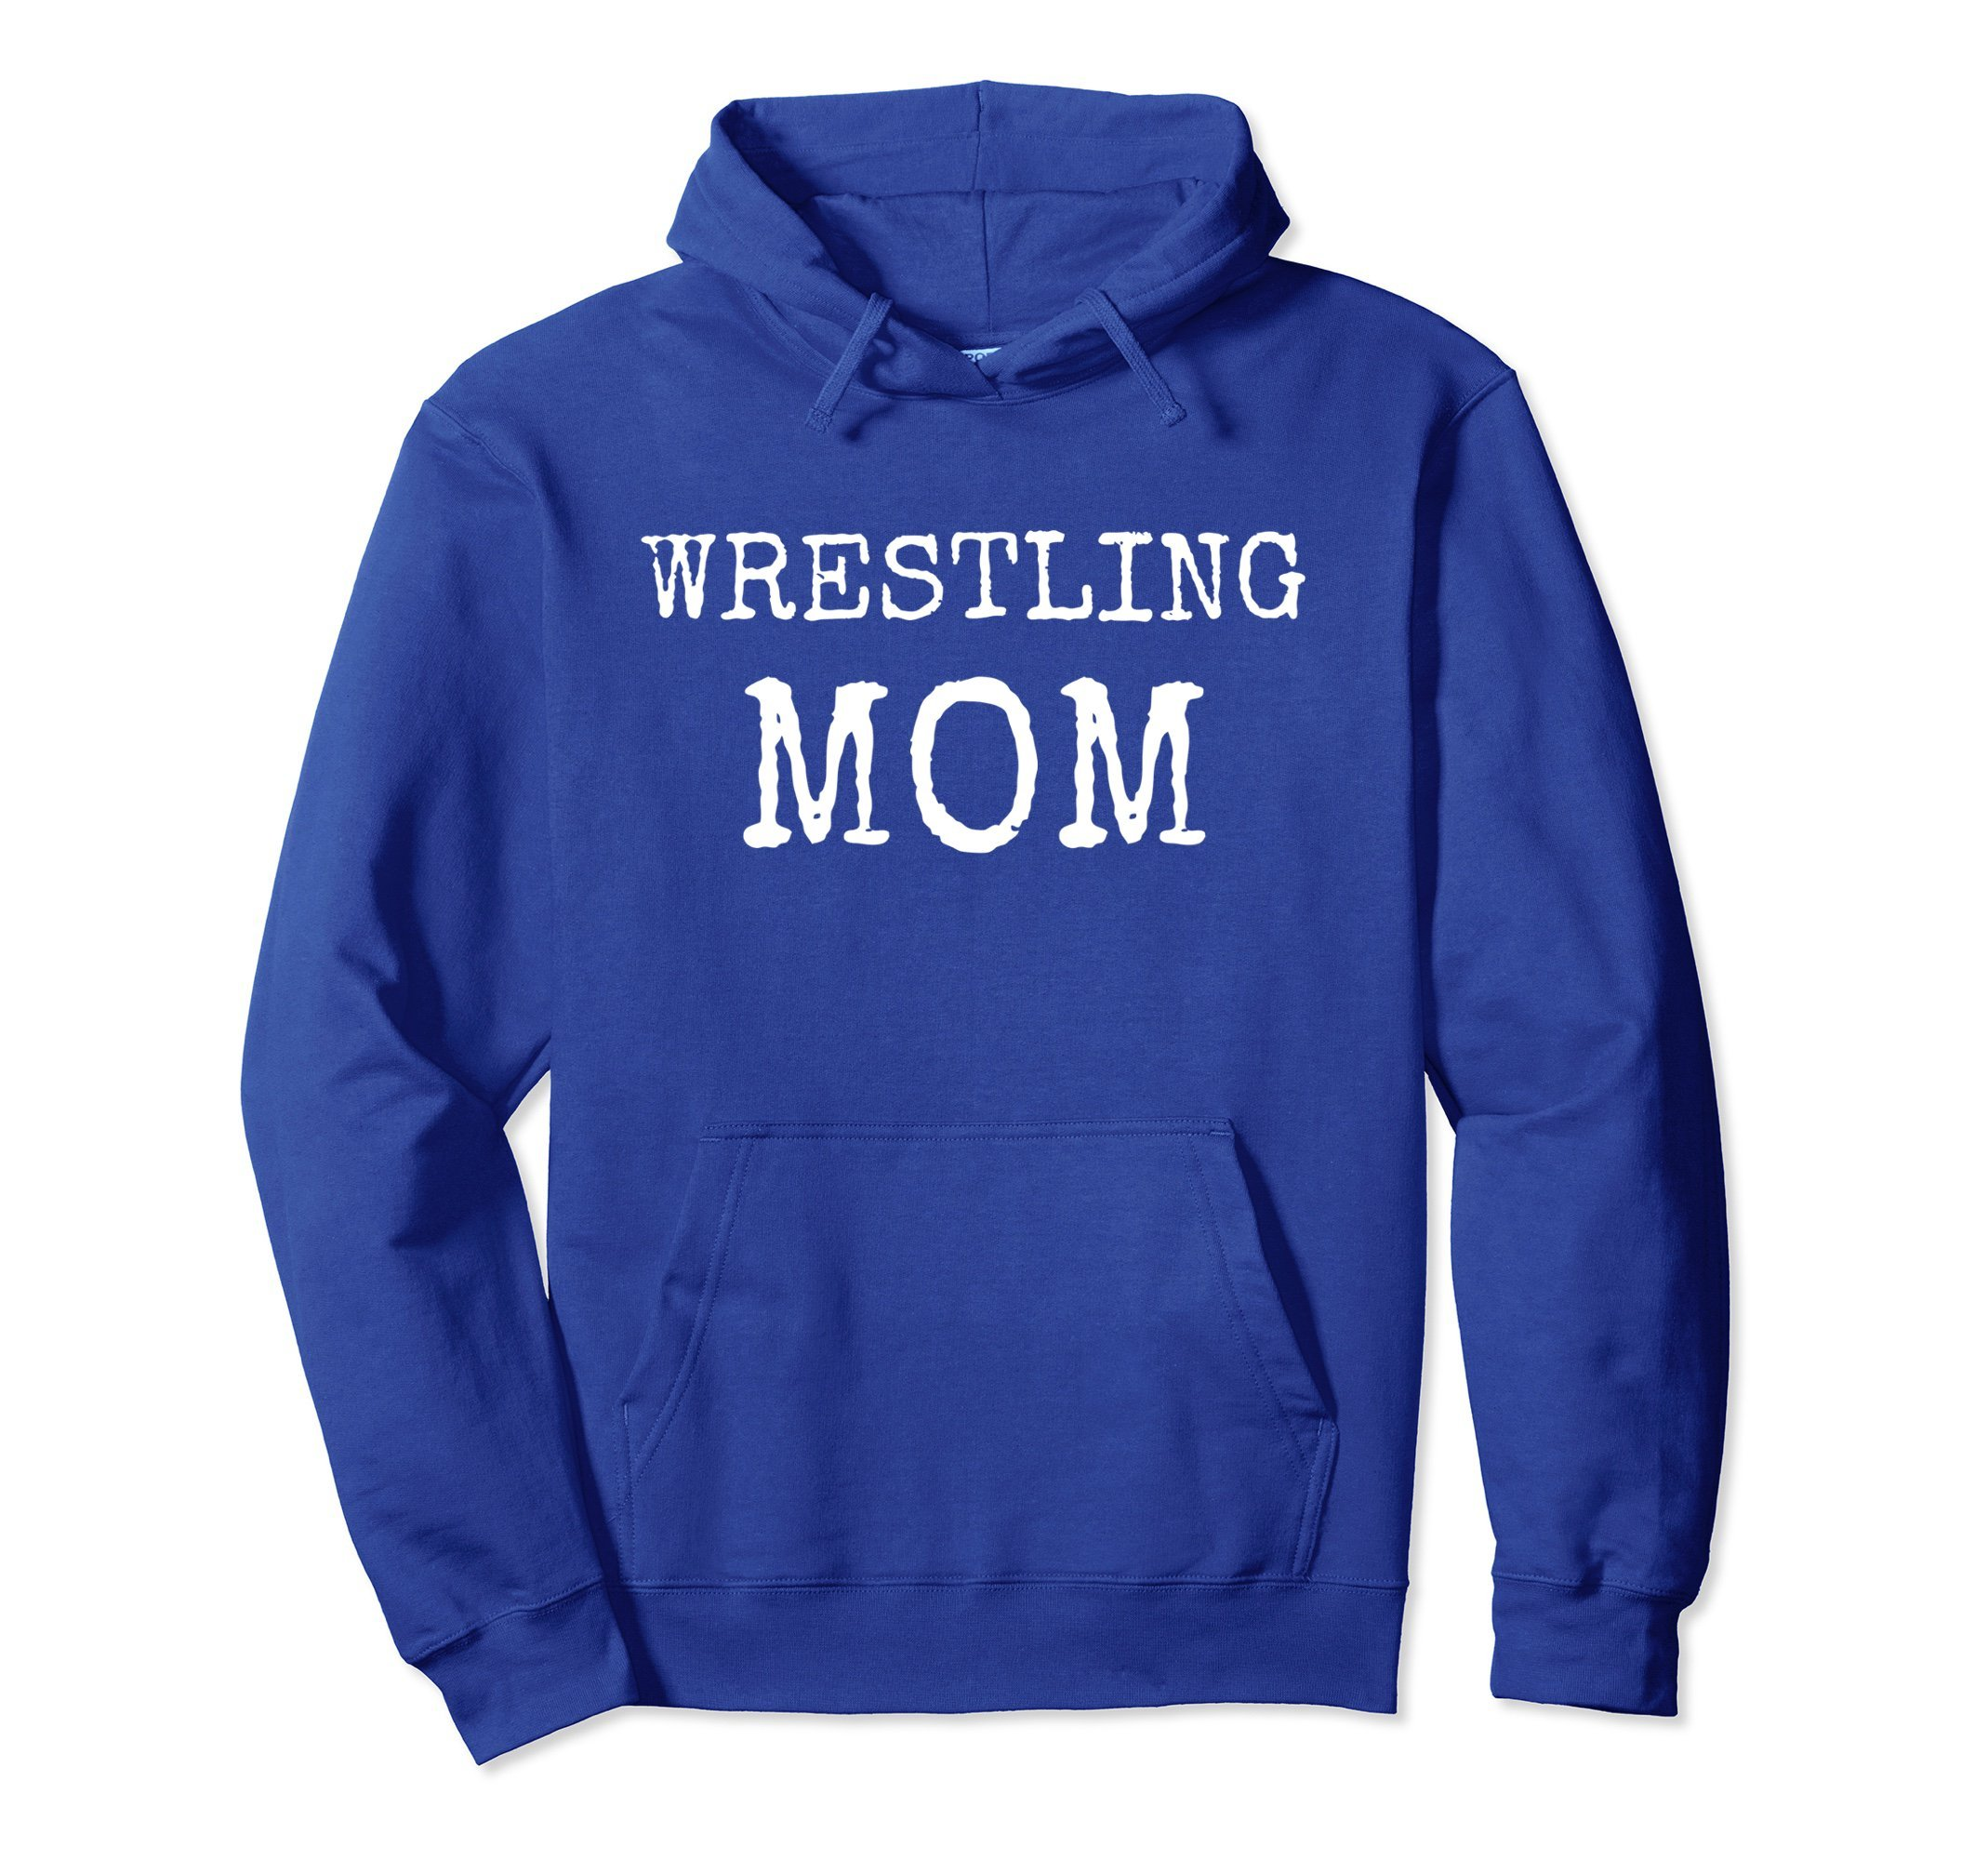 Unisex Wrestling Mom Hoodie - Wrestling Mom Hooded Sweatshirt Small Royal Blue by Family Wrestling Tees